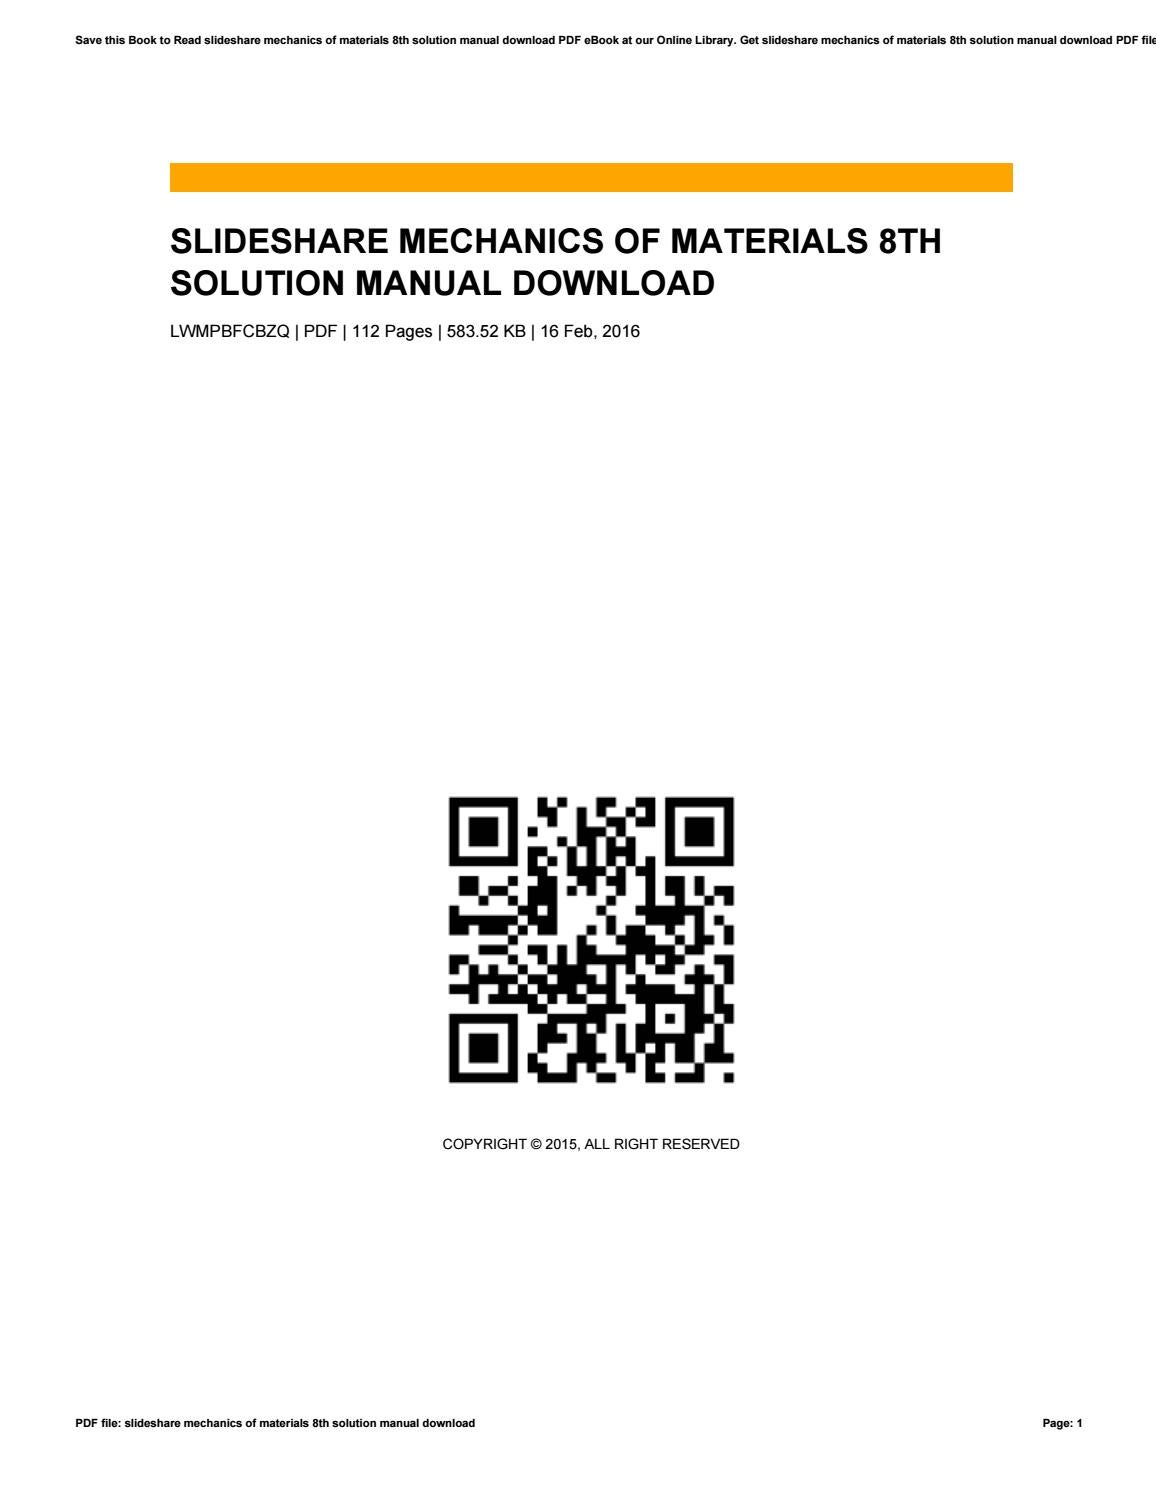 Slideshare mechanics of materials 8th solution manual